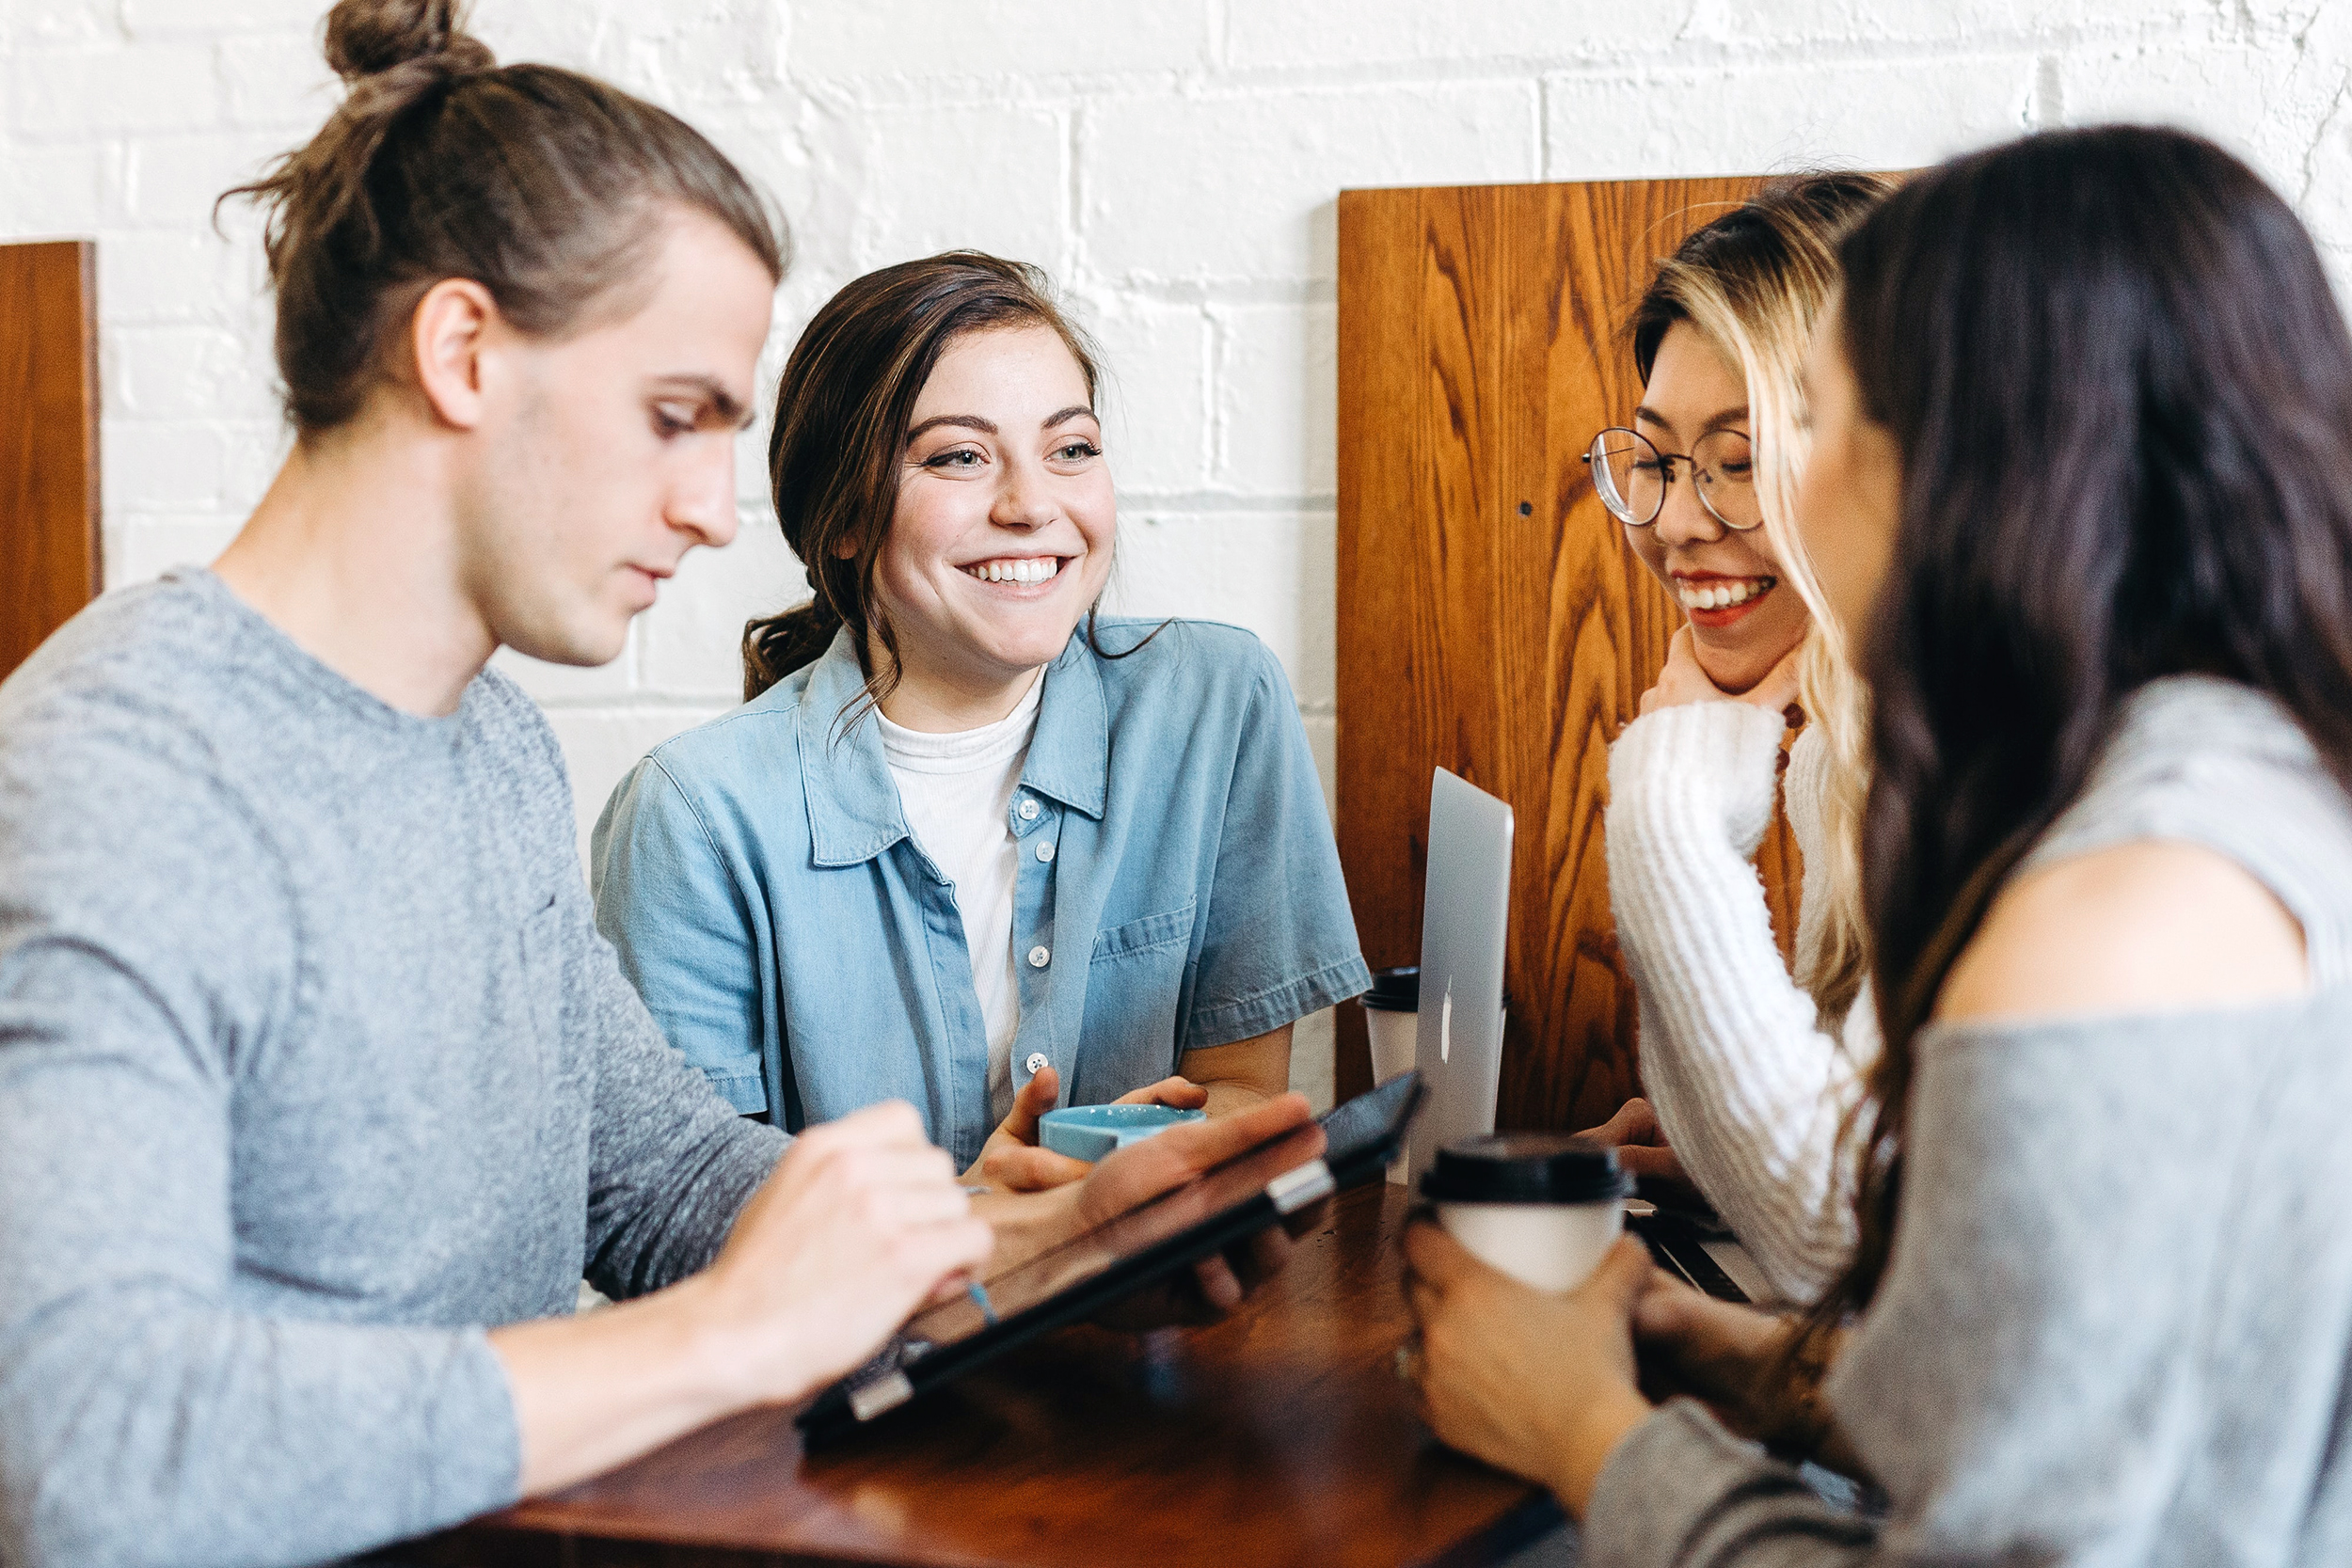 Peer learning in small business